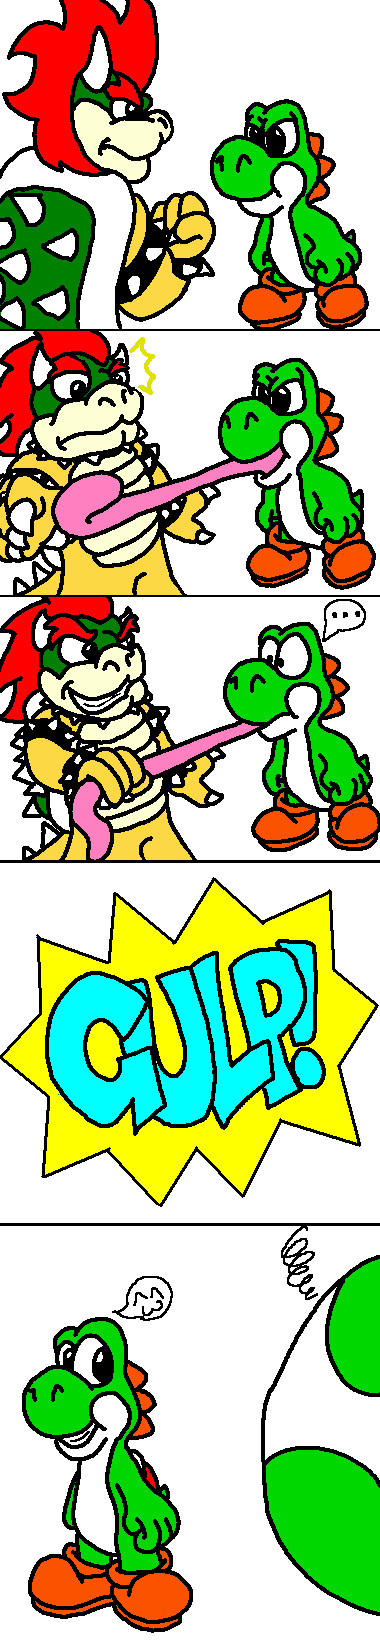 ::.It's love.:: by Bowser2Queen on DeviantArt |Bowser Loves Yoshi